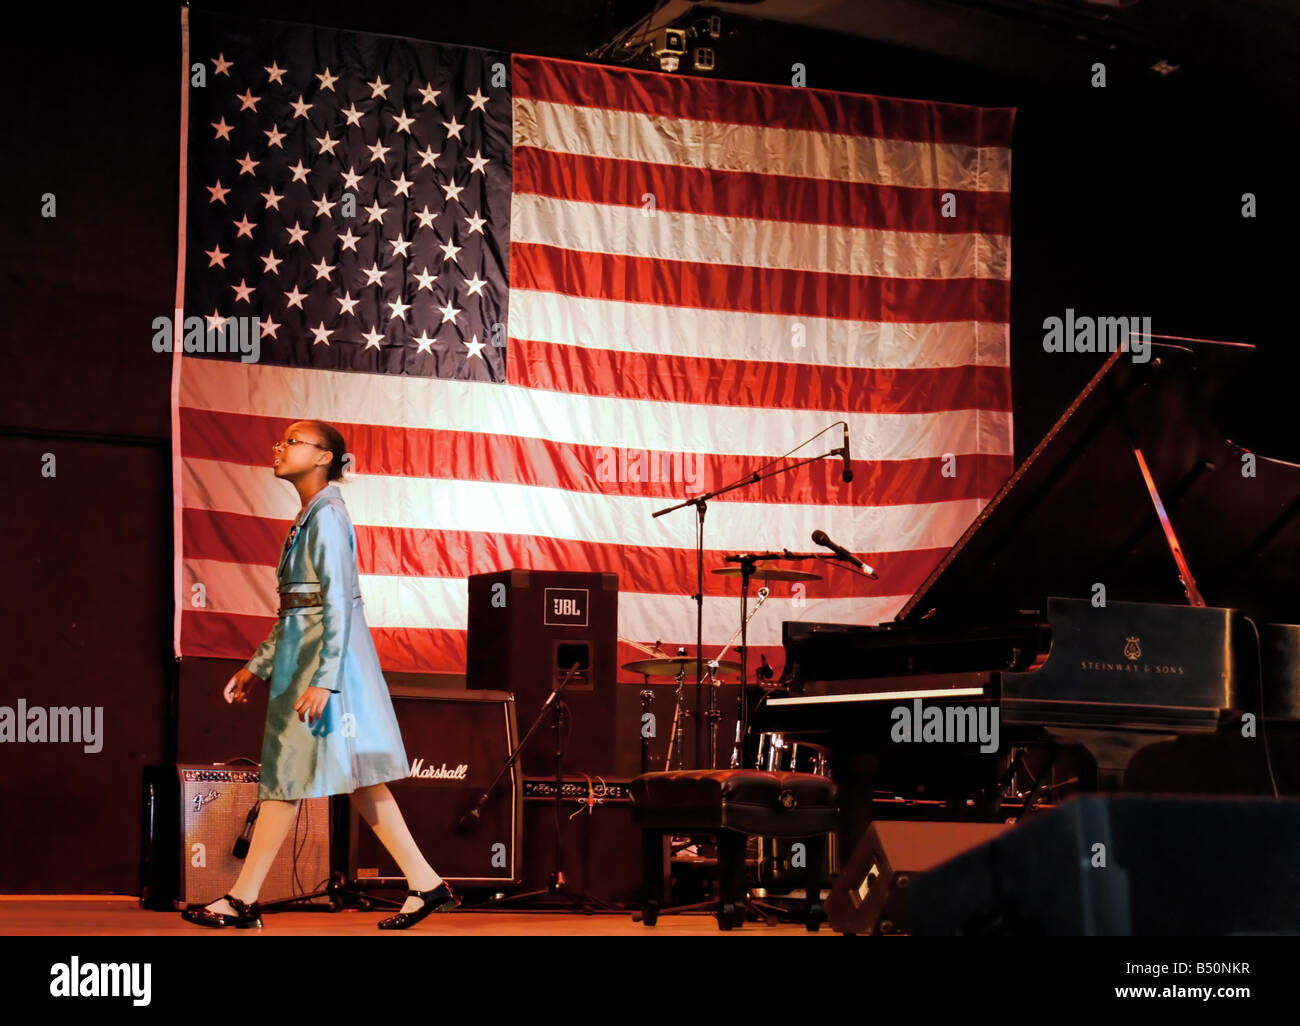 Obama Rally, with Sheimyrah Mighty, young singer, walking across stage in front of large American flag, NY, USA, - Stock Image